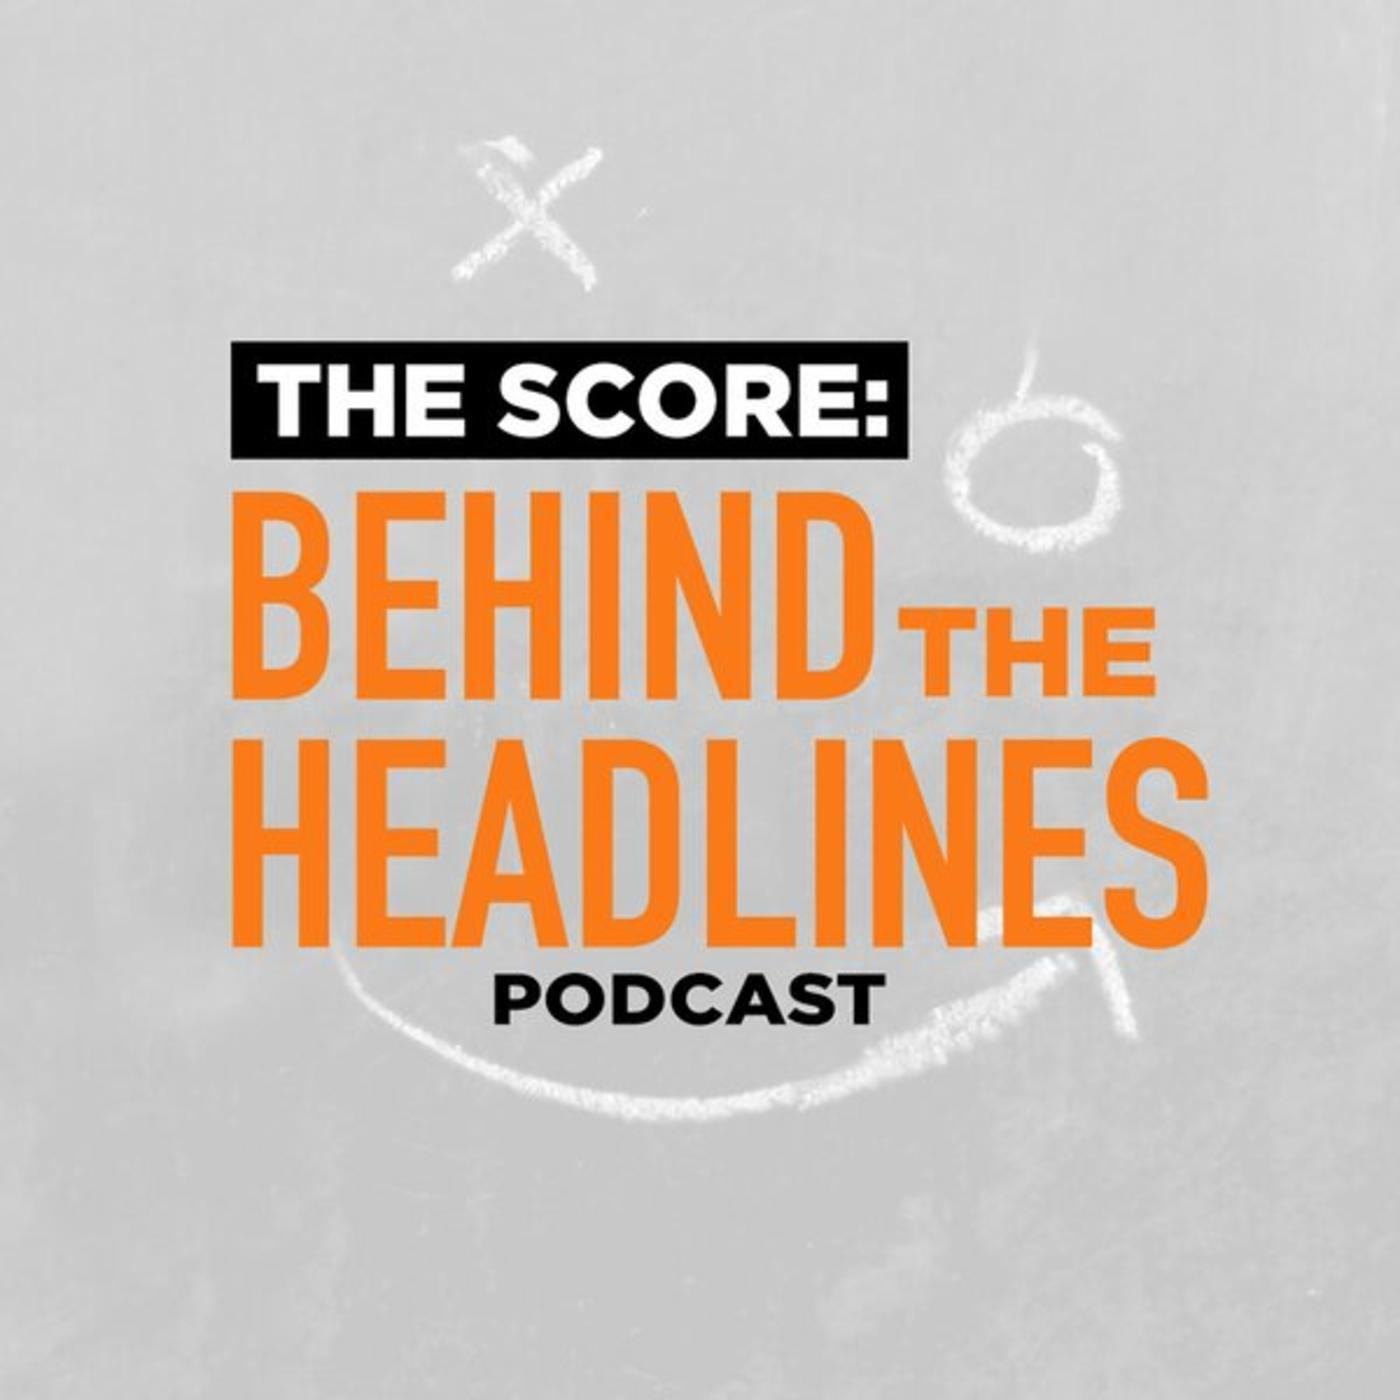 The Score: Behind the Headlines